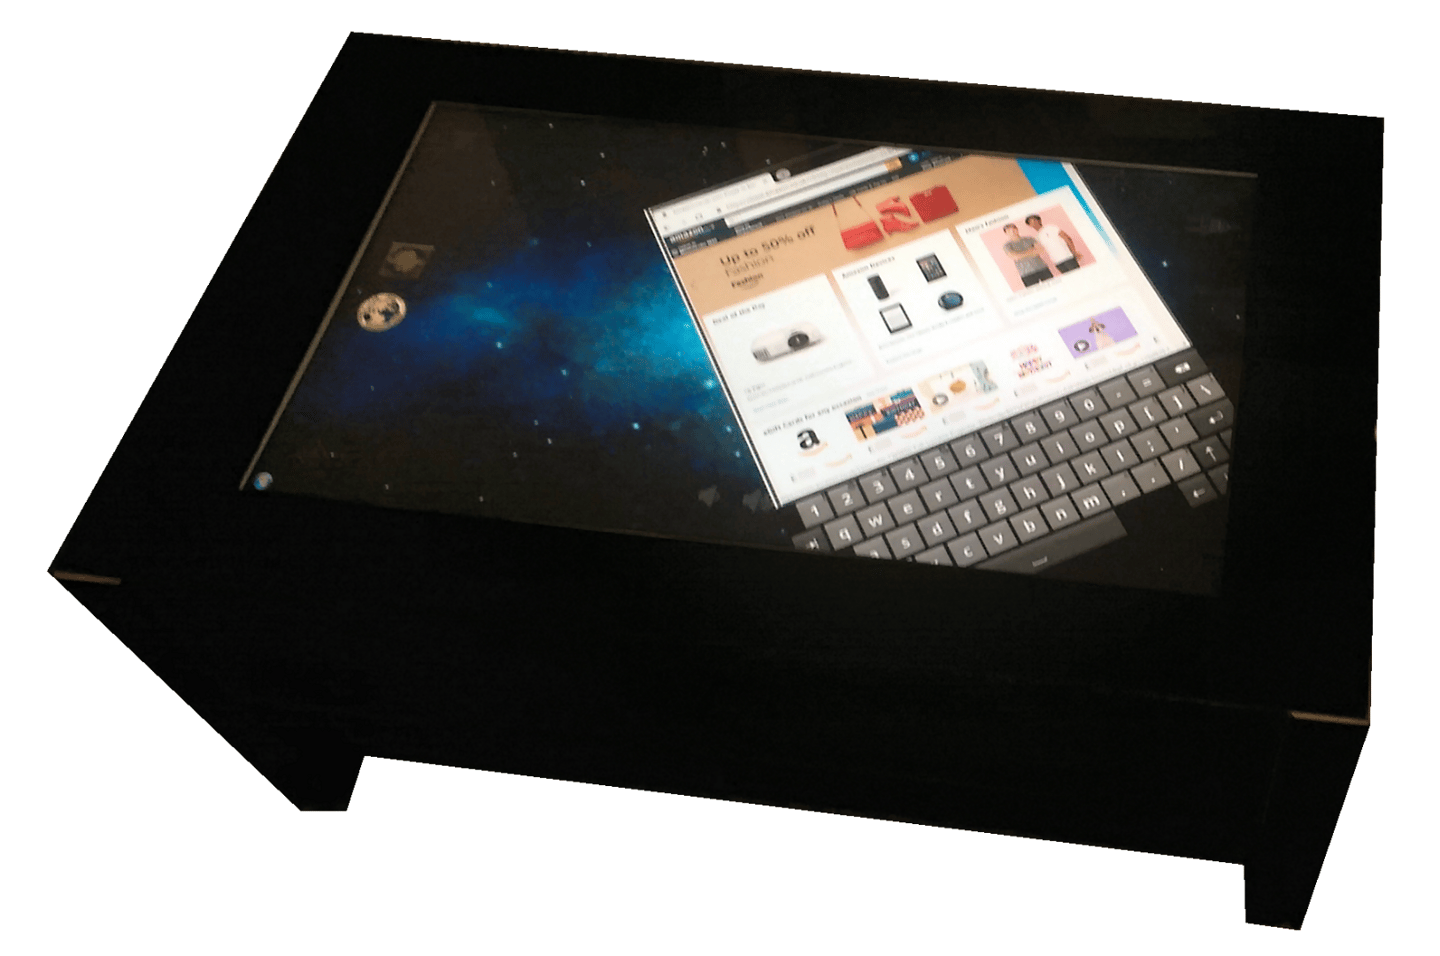 The Jigabyte coffee table is topped by a 32 inch capacitive touch display